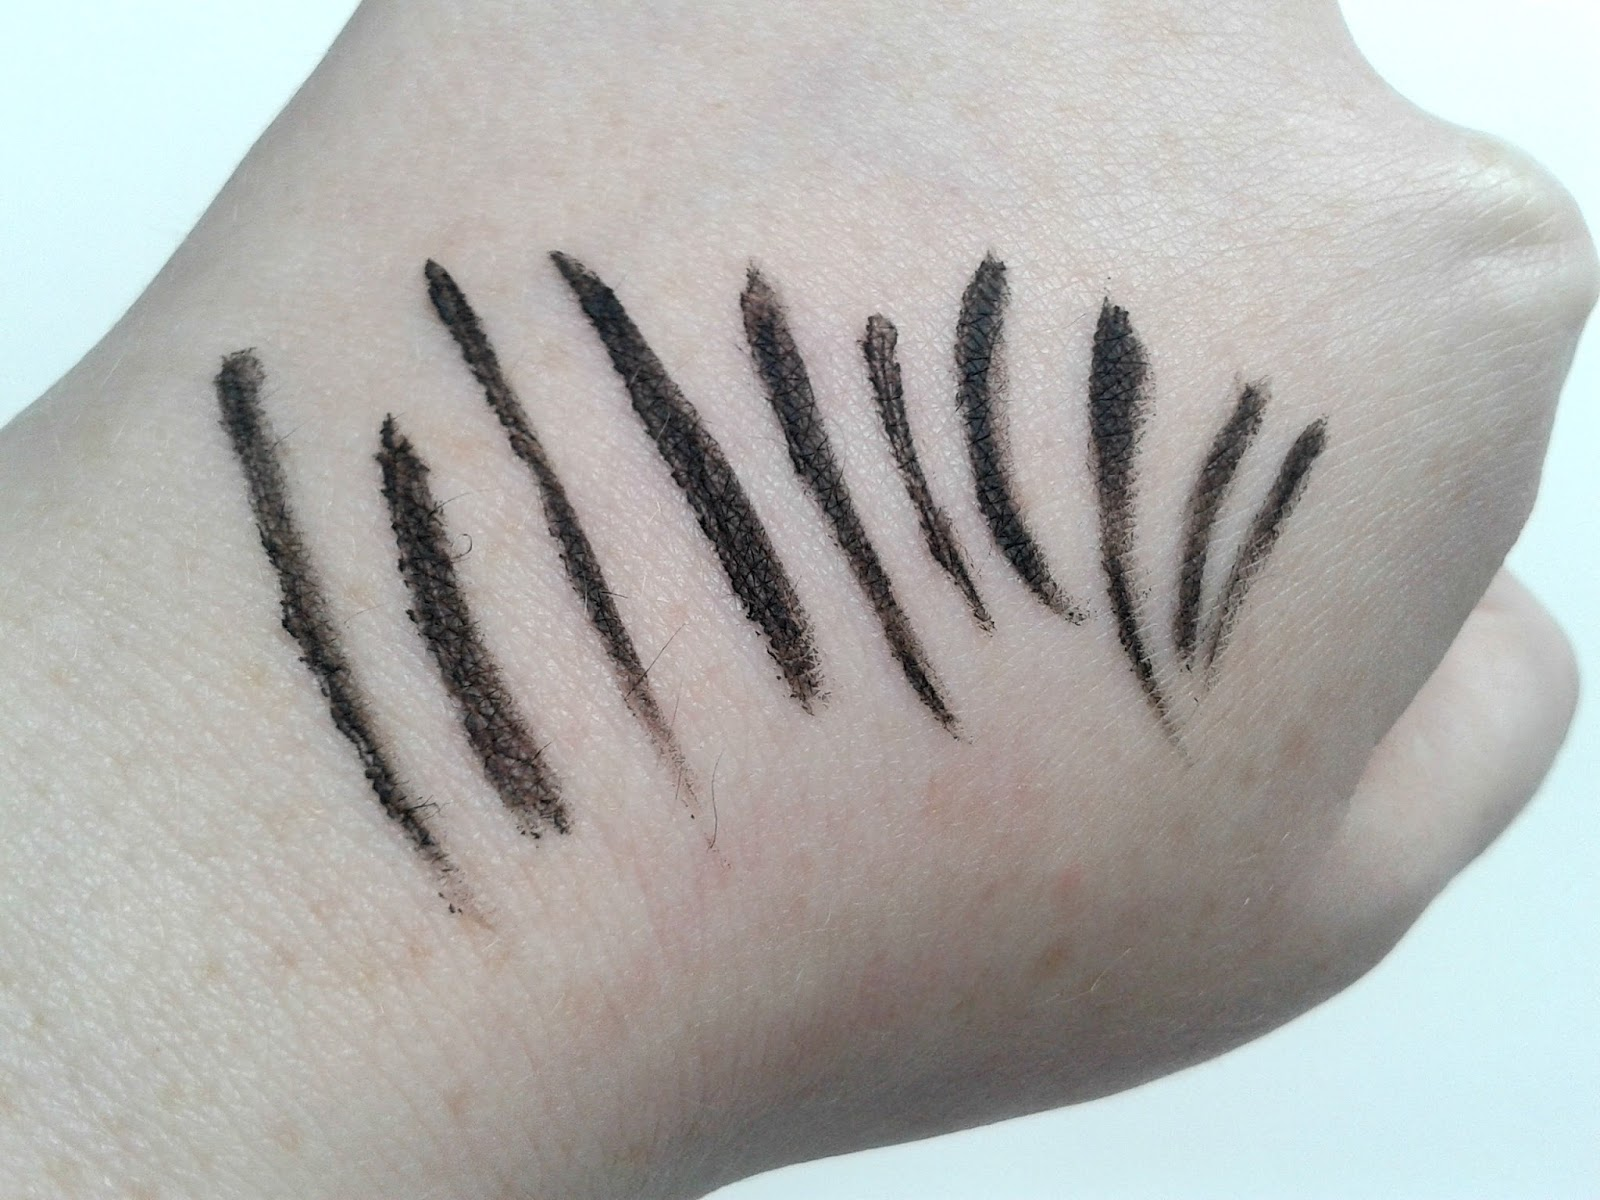 Benefit They're Real! Push-Up Liner Beauty Review Swatches Swatch